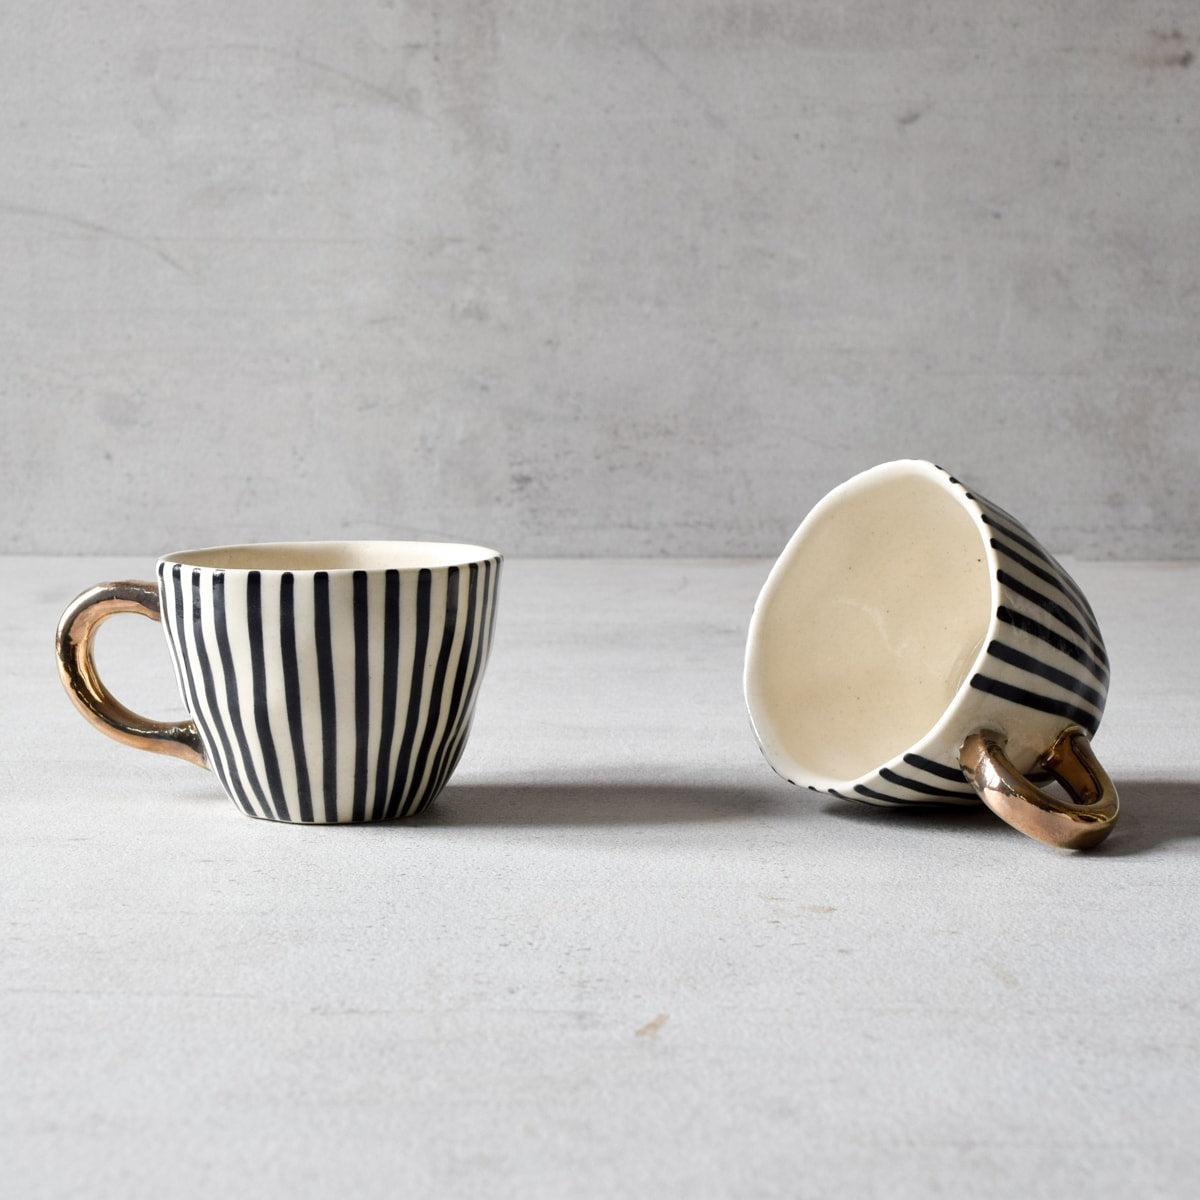 Ella Black Vertical Striped Ceramic Cup with Golden Handle